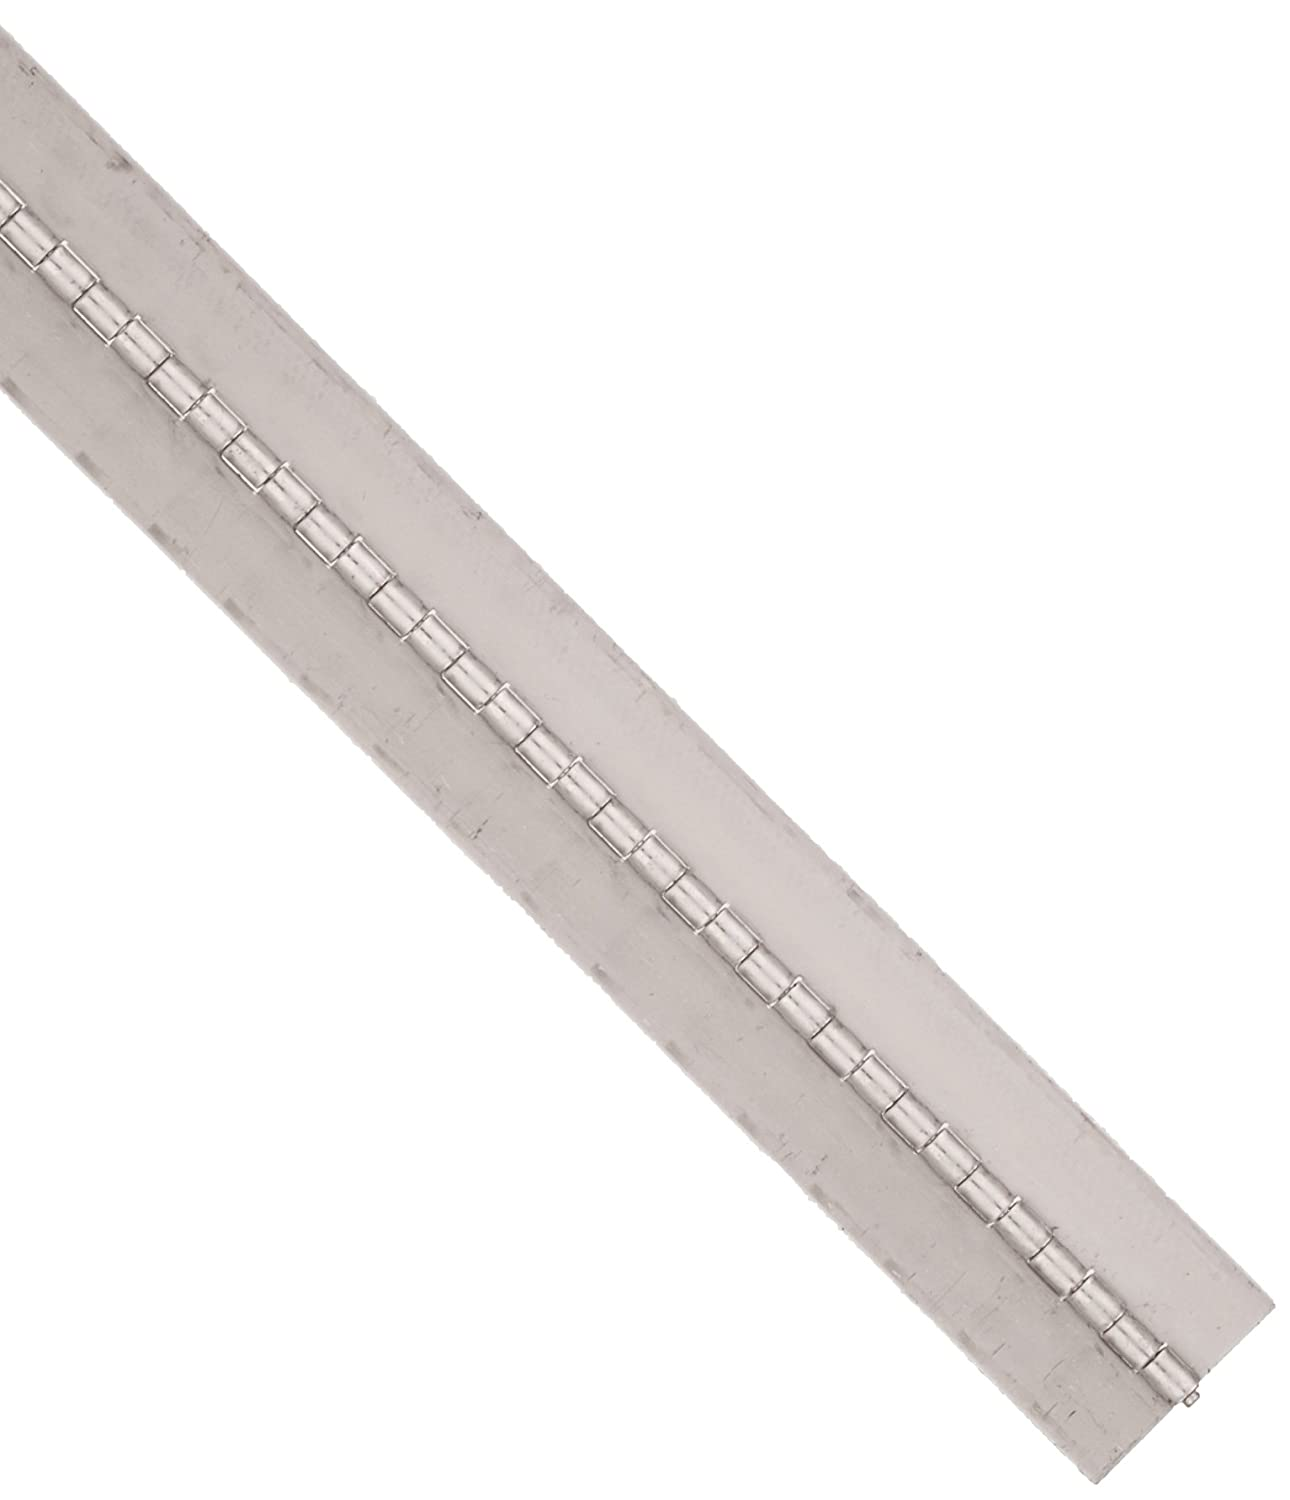 1//8 Pin Diameter Unfinished Pack of 1 1//2 Knuckle Length 3 Long Stainless Steel 304 Continuous Hinge with Holes 3 Open Width 0.06 Leaf Thickness